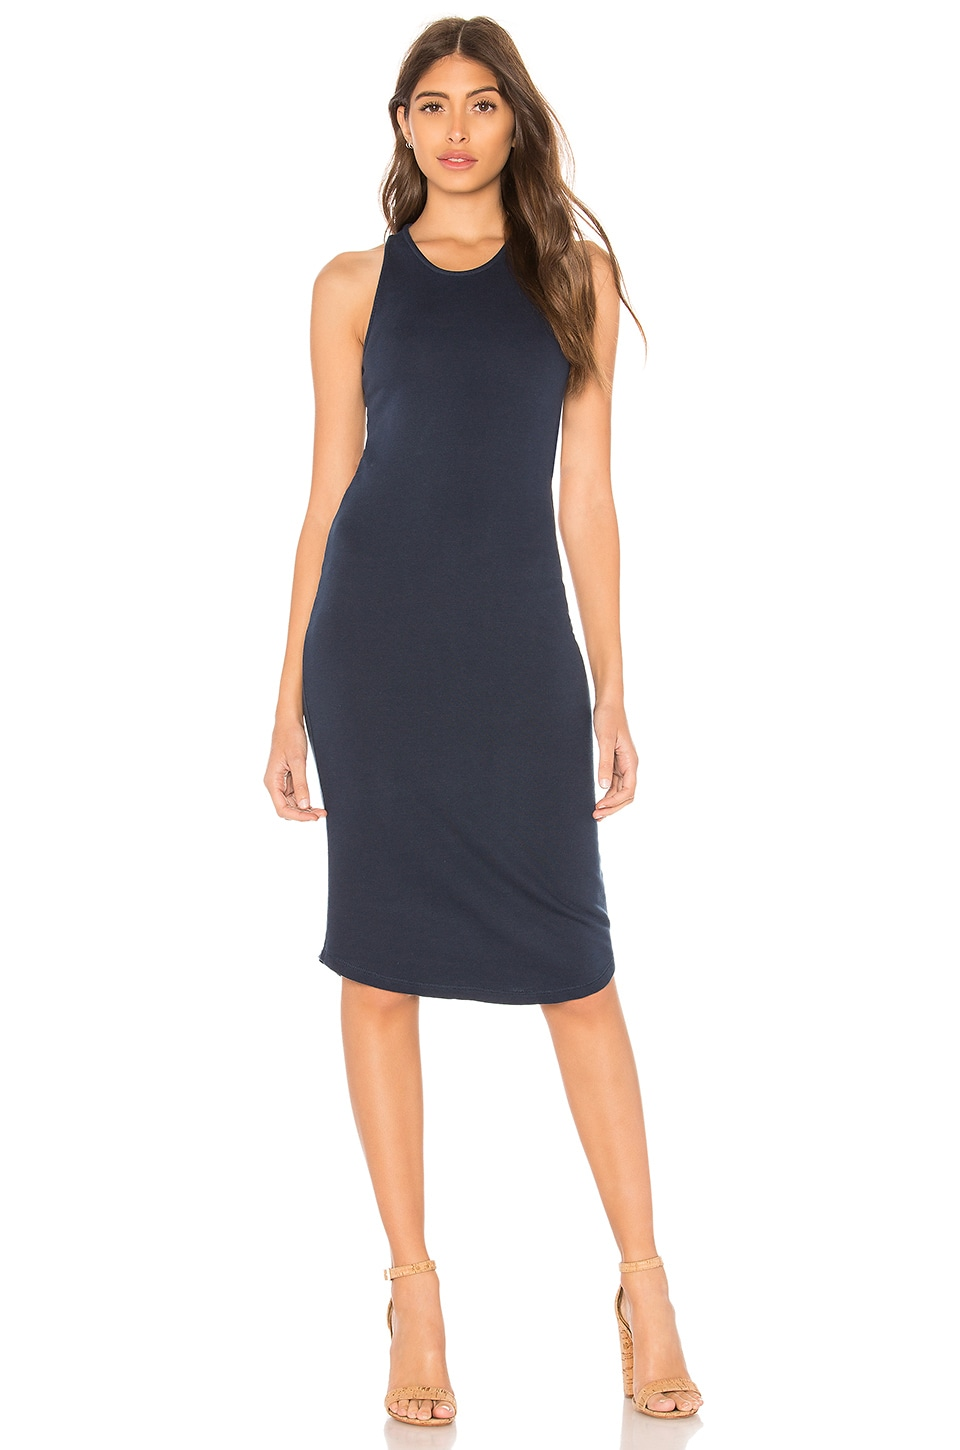 French Terry Tank Dress by MONROW